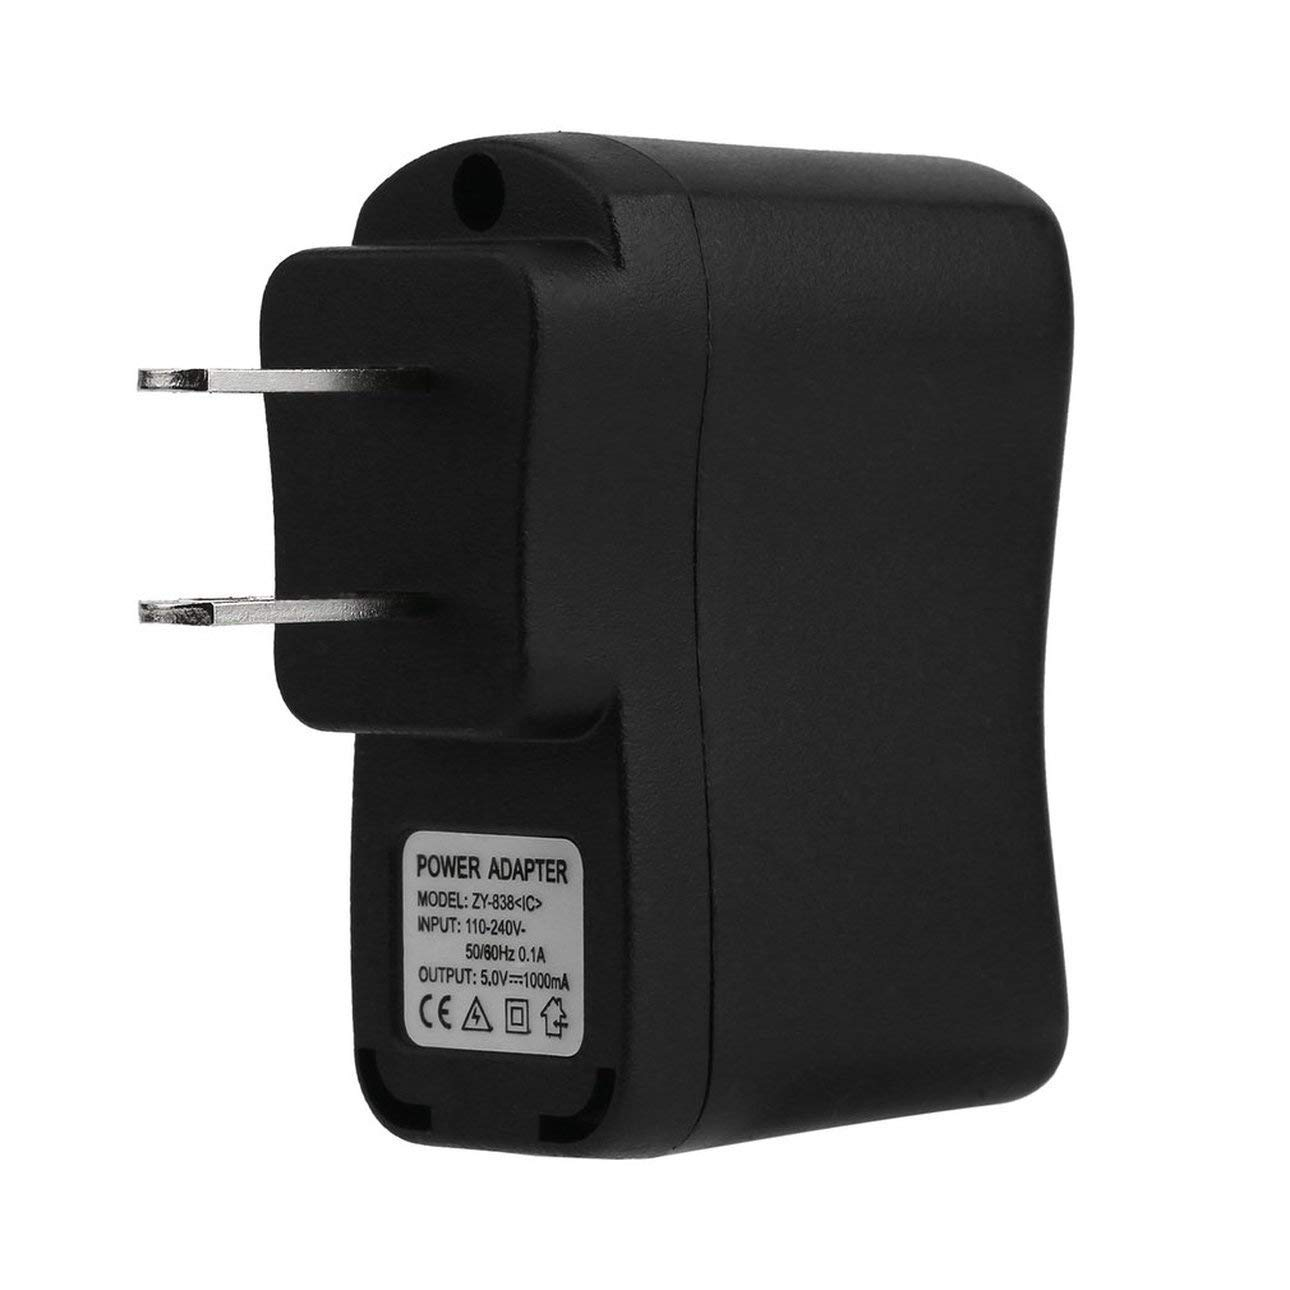 USB Wall Charger, ChargerAdapters 1Pc USB Wall Adapter MP3 Charger AC DC Power Supply EU/US Plug Suitable for DVS, mp3, Cellphone, PDAs